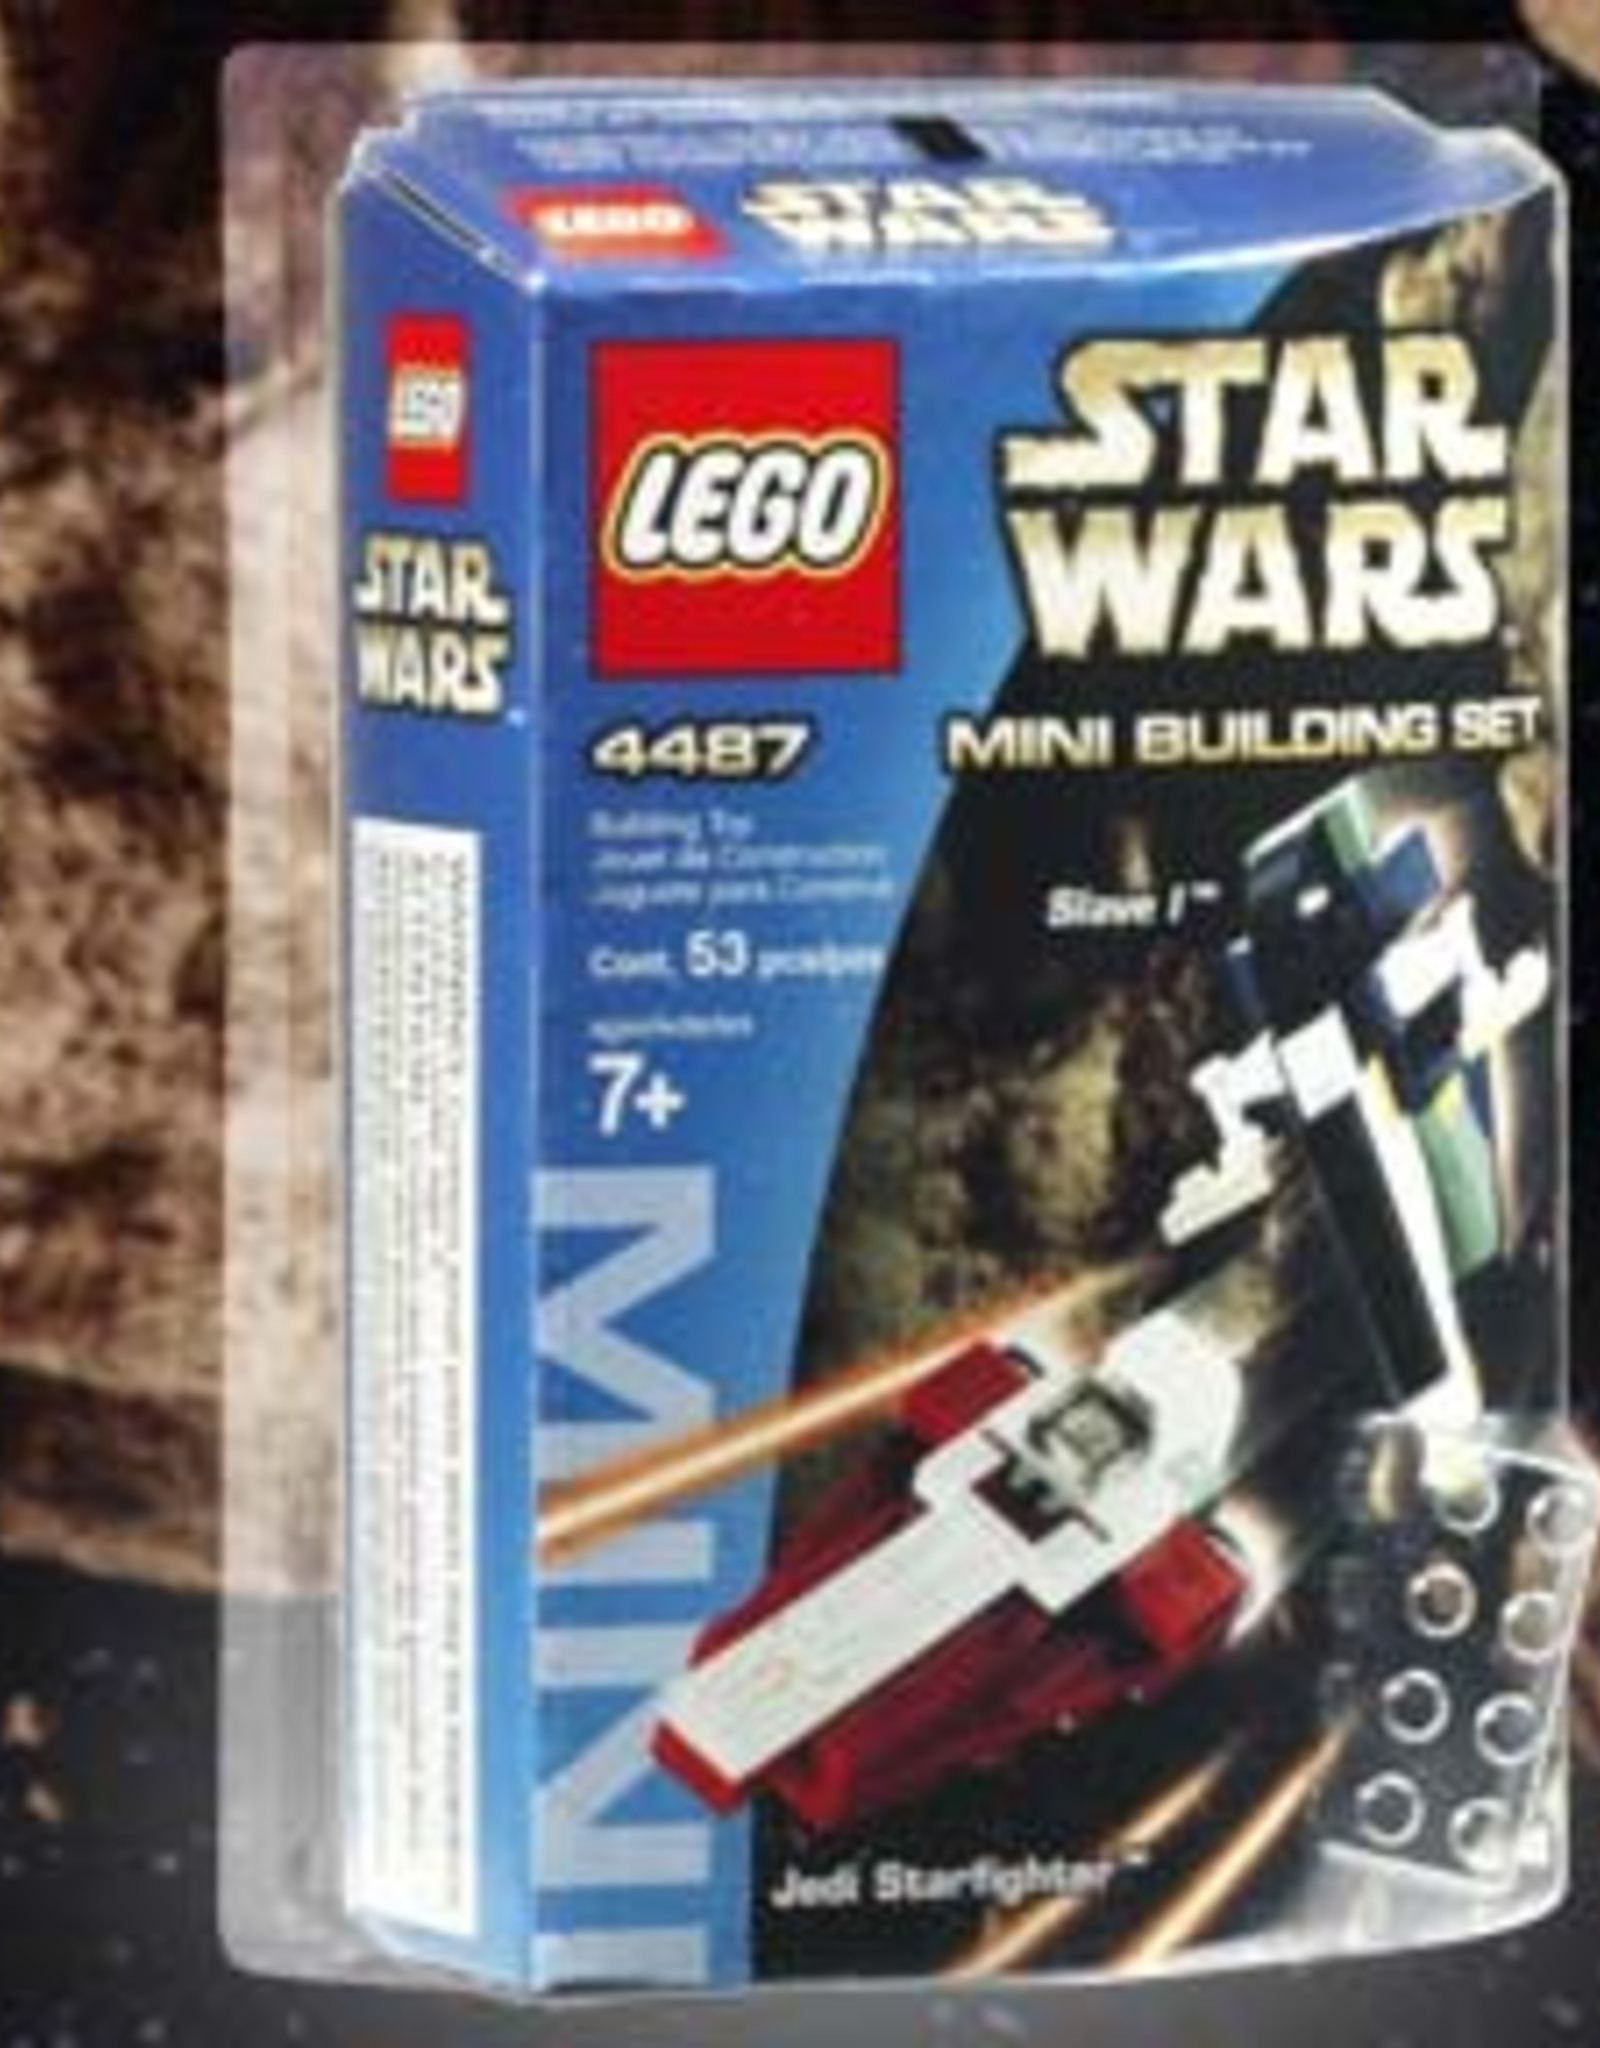 LEGO LEGO 4487 Jedi Startfighter and Slave I STAR WARS